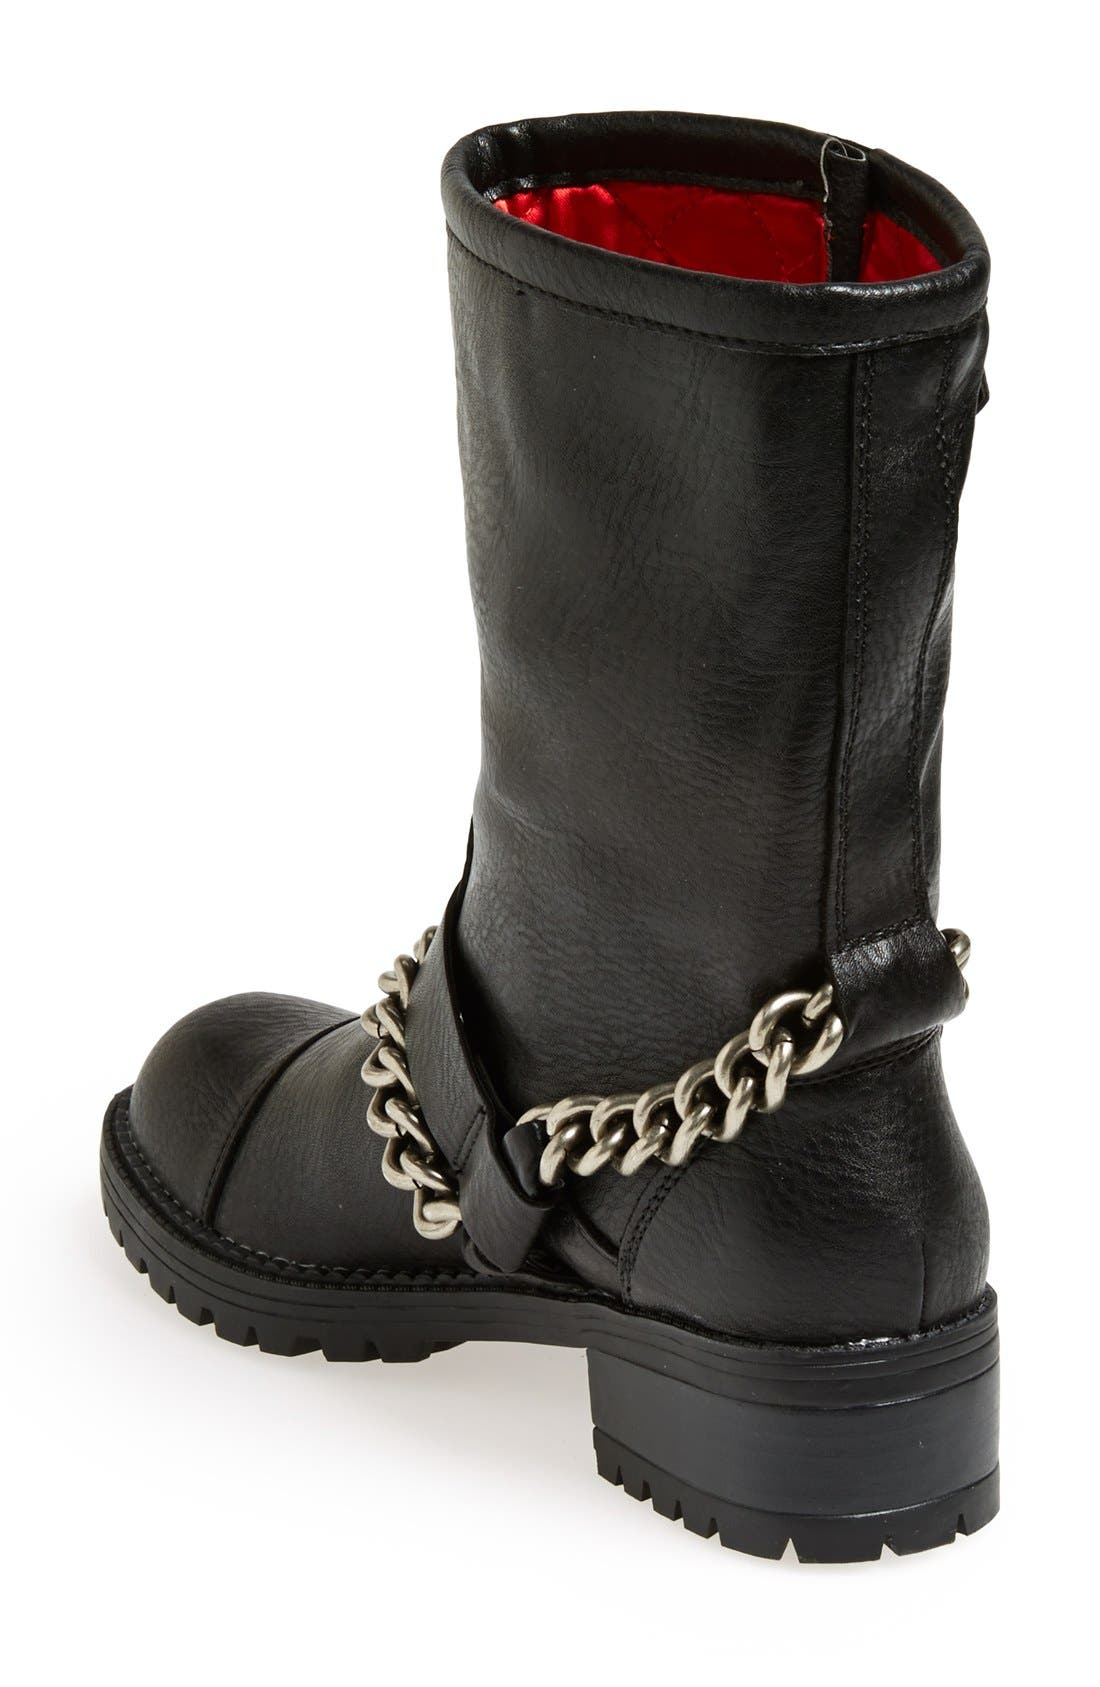 KENDALL + KYLIE Madden Girl 'Bedforrd' Chain Wrapped Biker Bootie,                             Alternate thumbnail 4, color,                             003